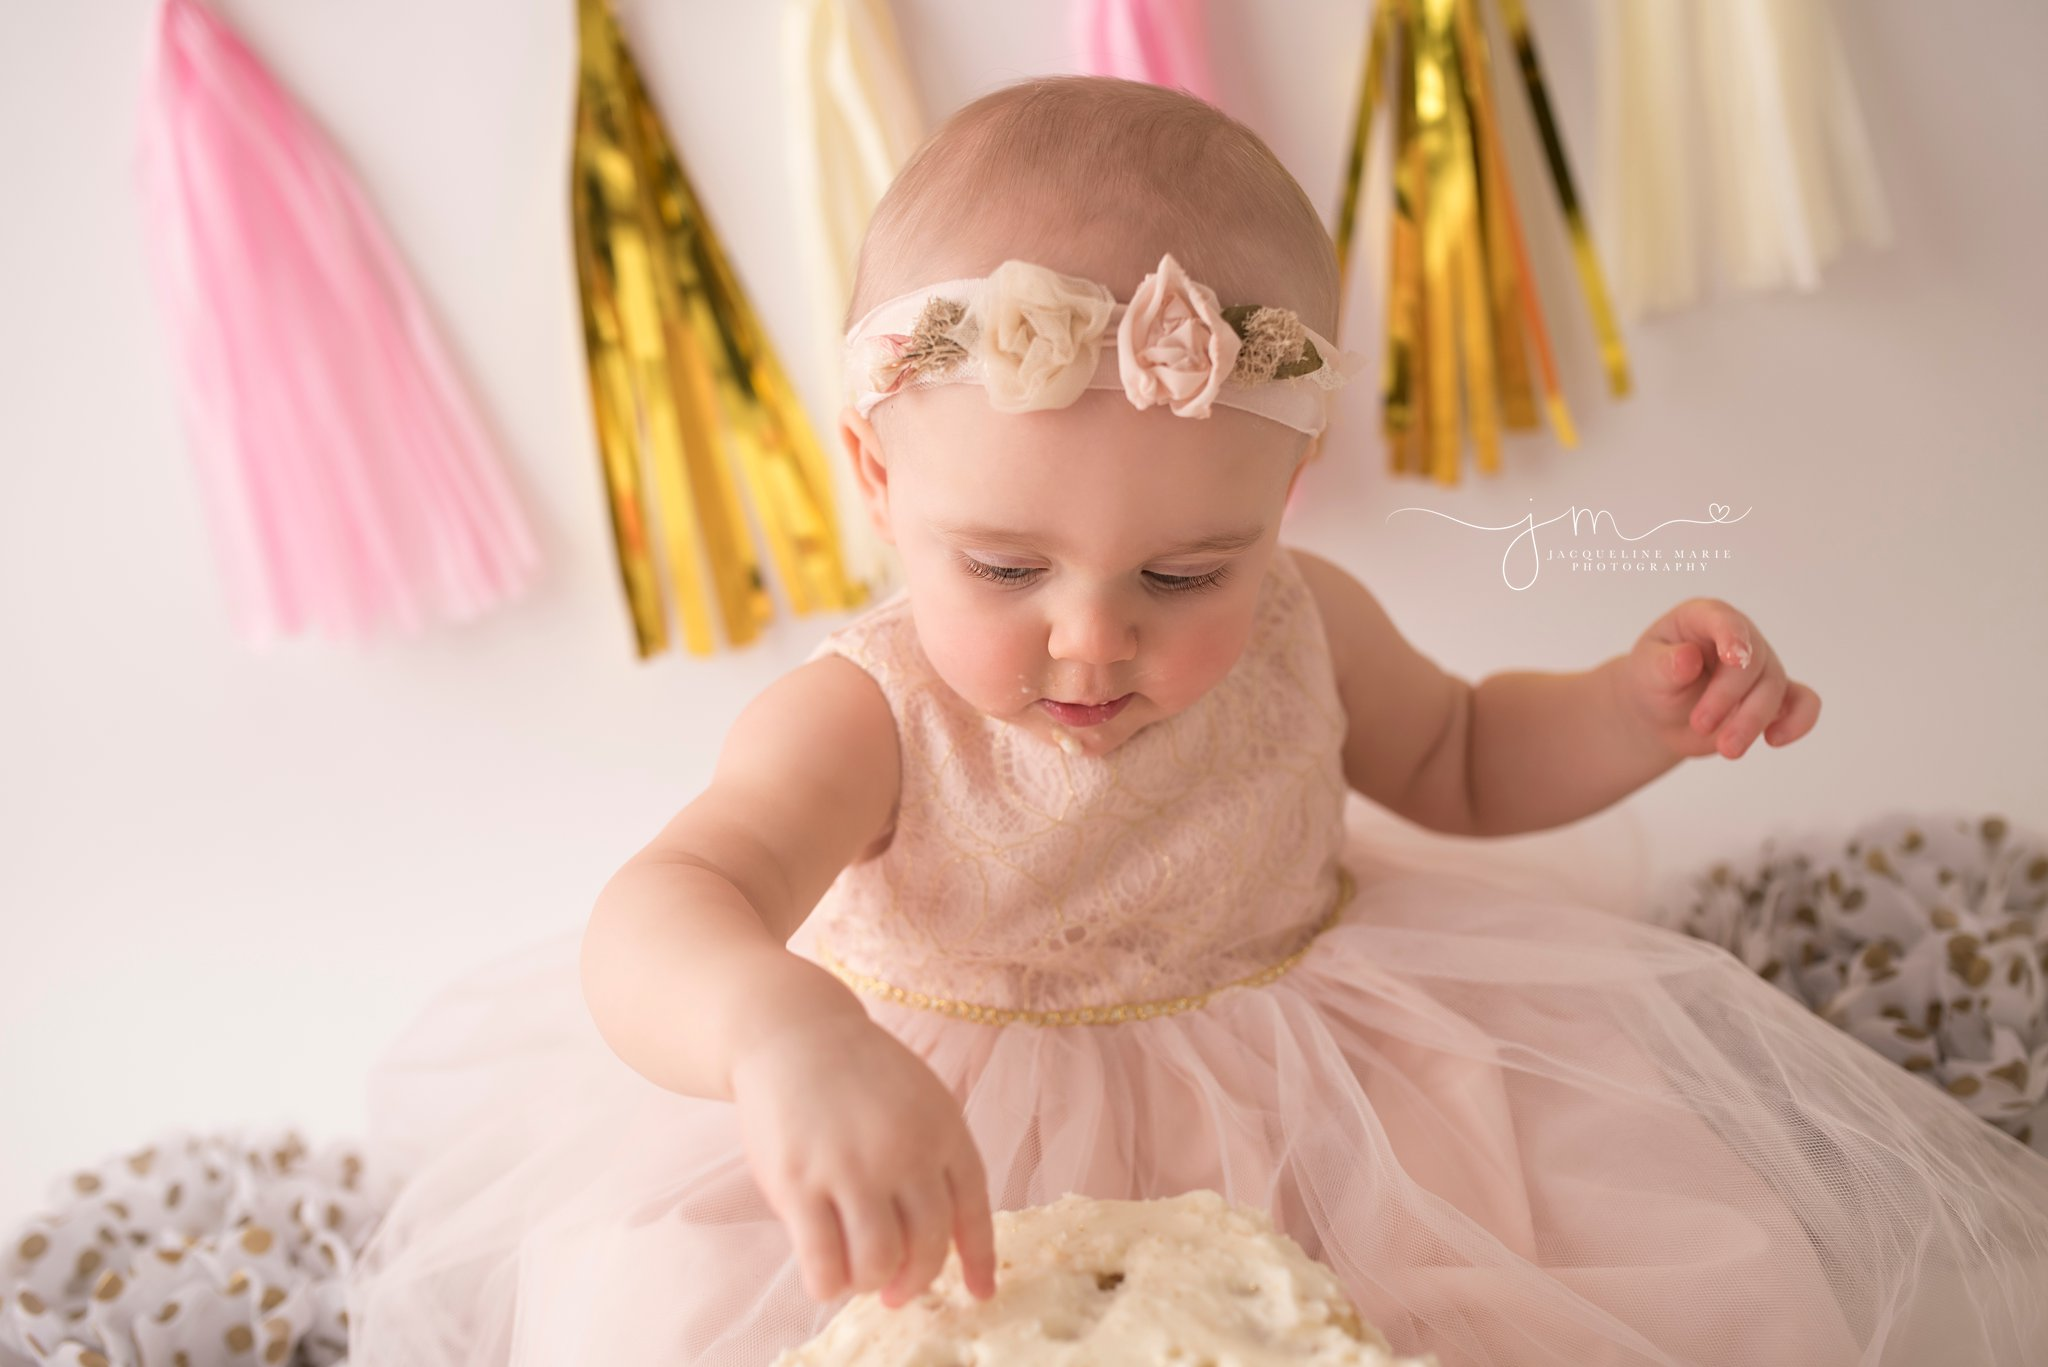 gold pink and cream custom cake smash first birthday photography provided by jacqueline marie photography